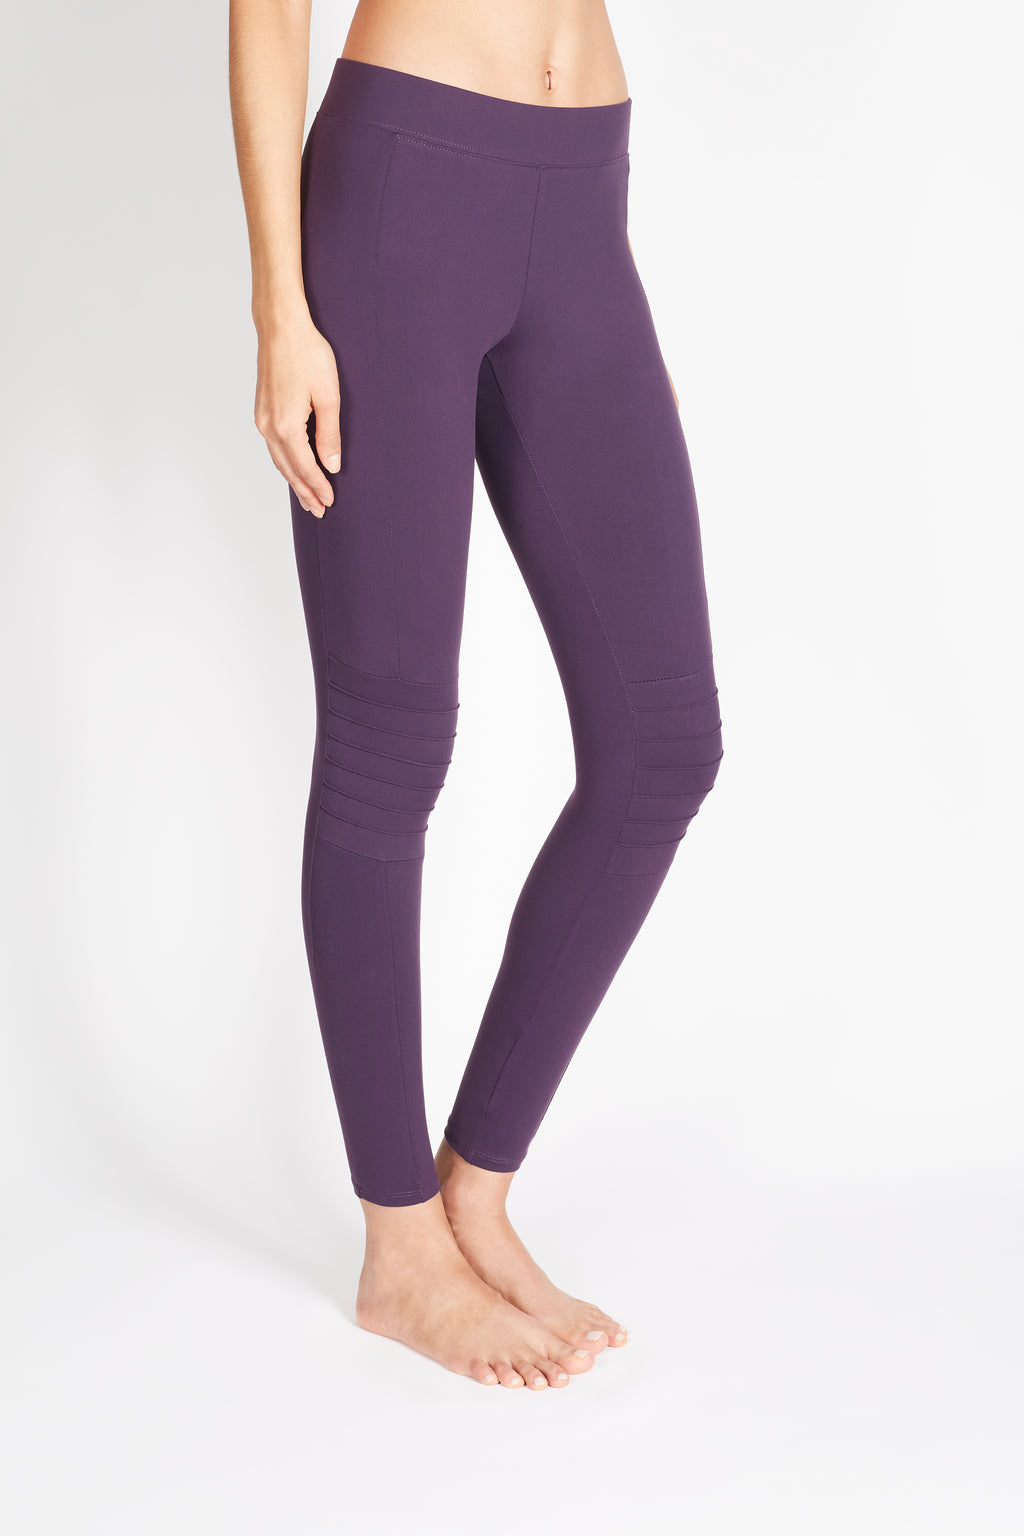 MOTO DETAILED LEGGING IN SUPPLEX